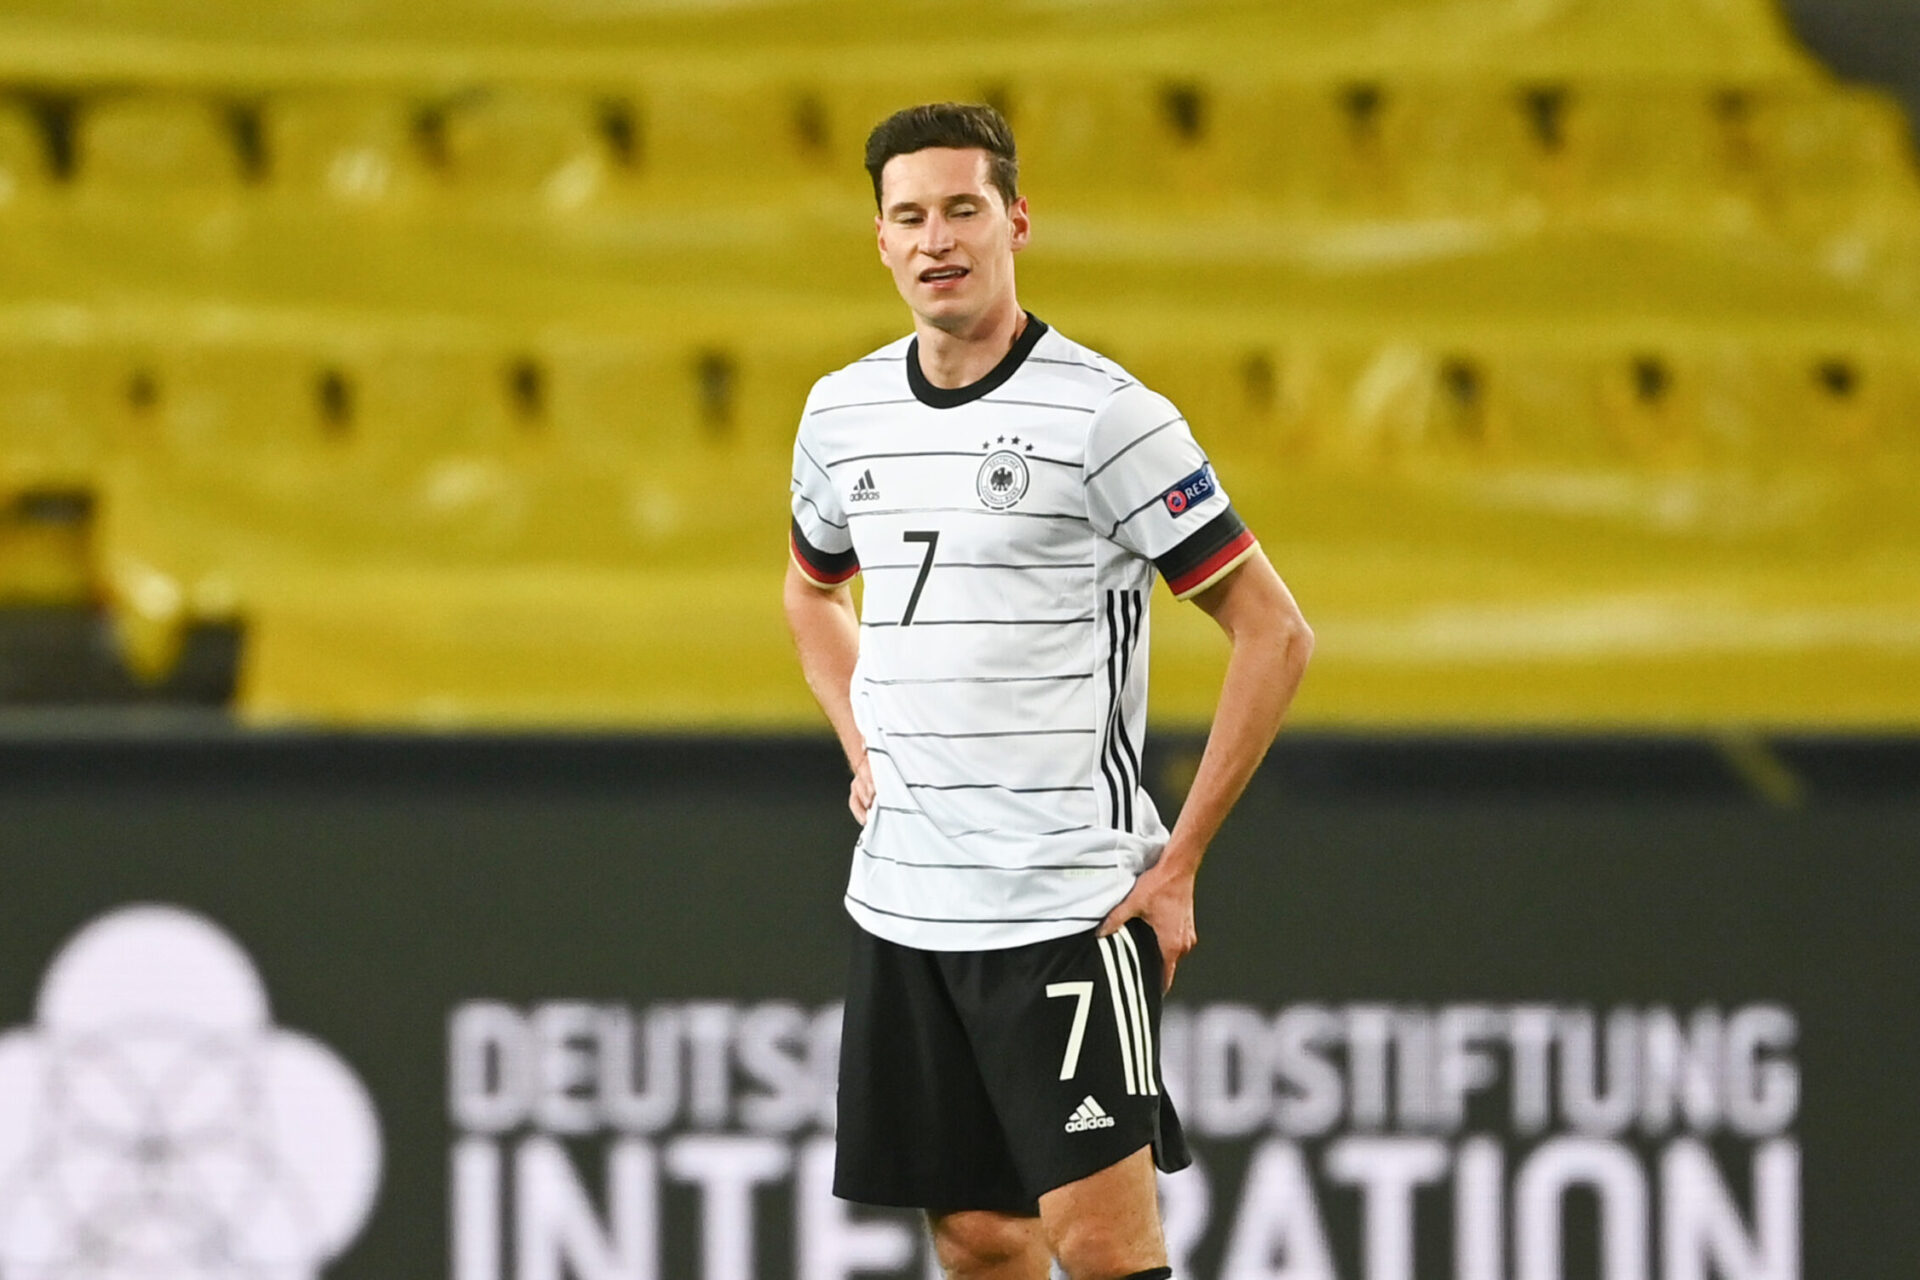 Julian Draxler honorant son pays, l'Allemagne (Icon Sport)